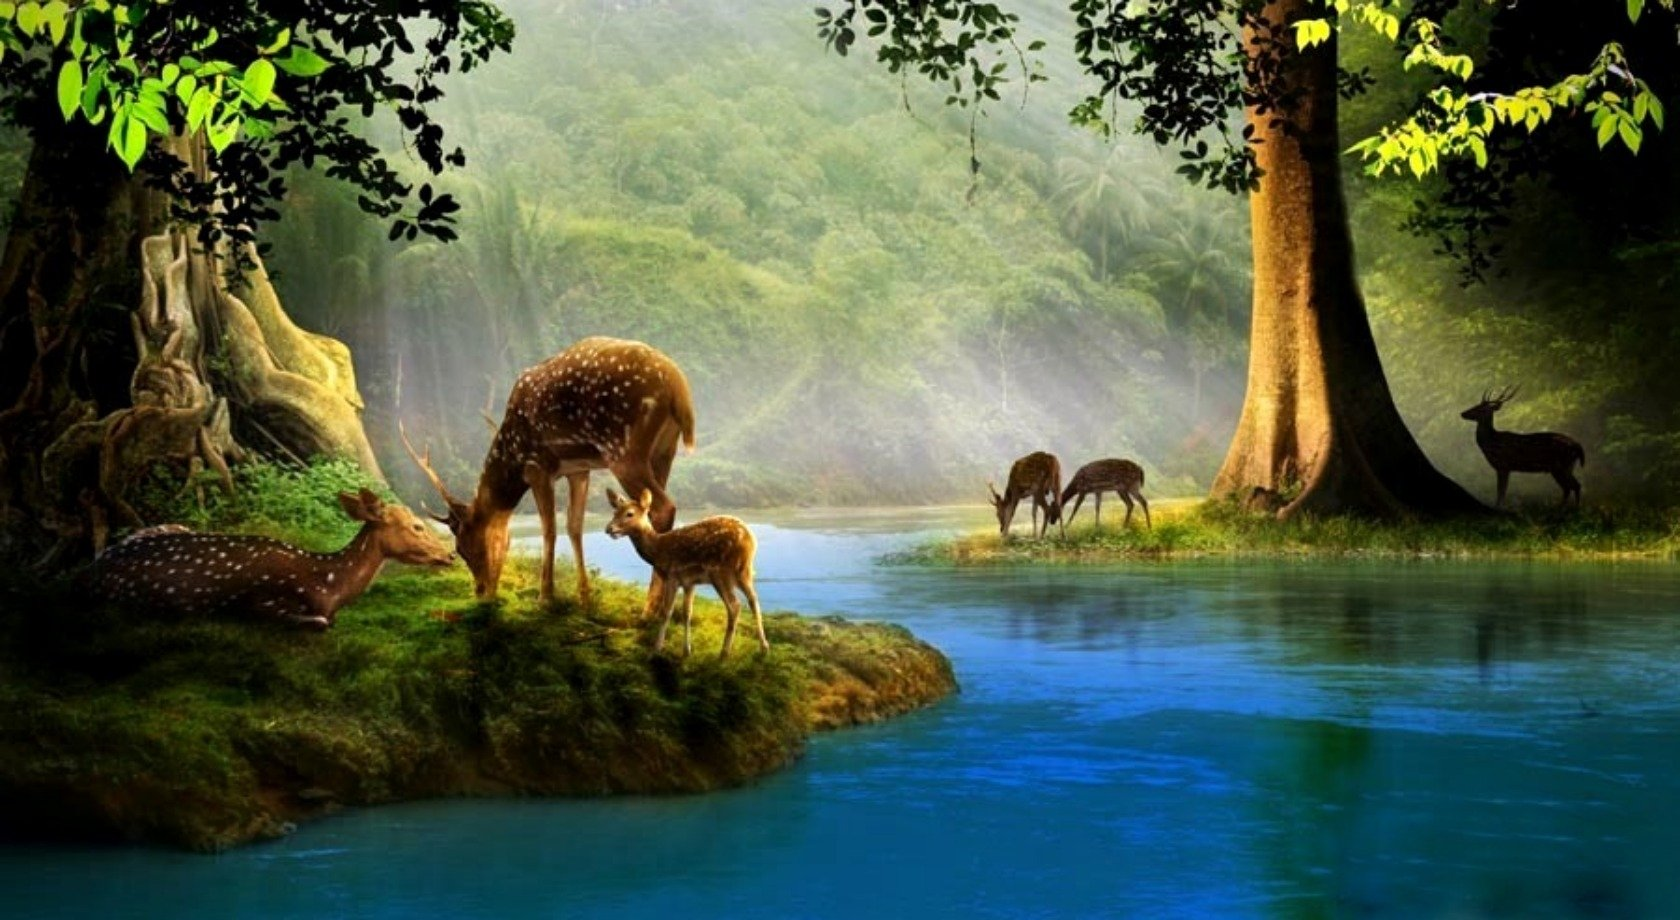 10 Latest Wallpapers Of Baby Animals Full Hd 1080p For Pc: Hirsch Wallpaper And Hintergrund